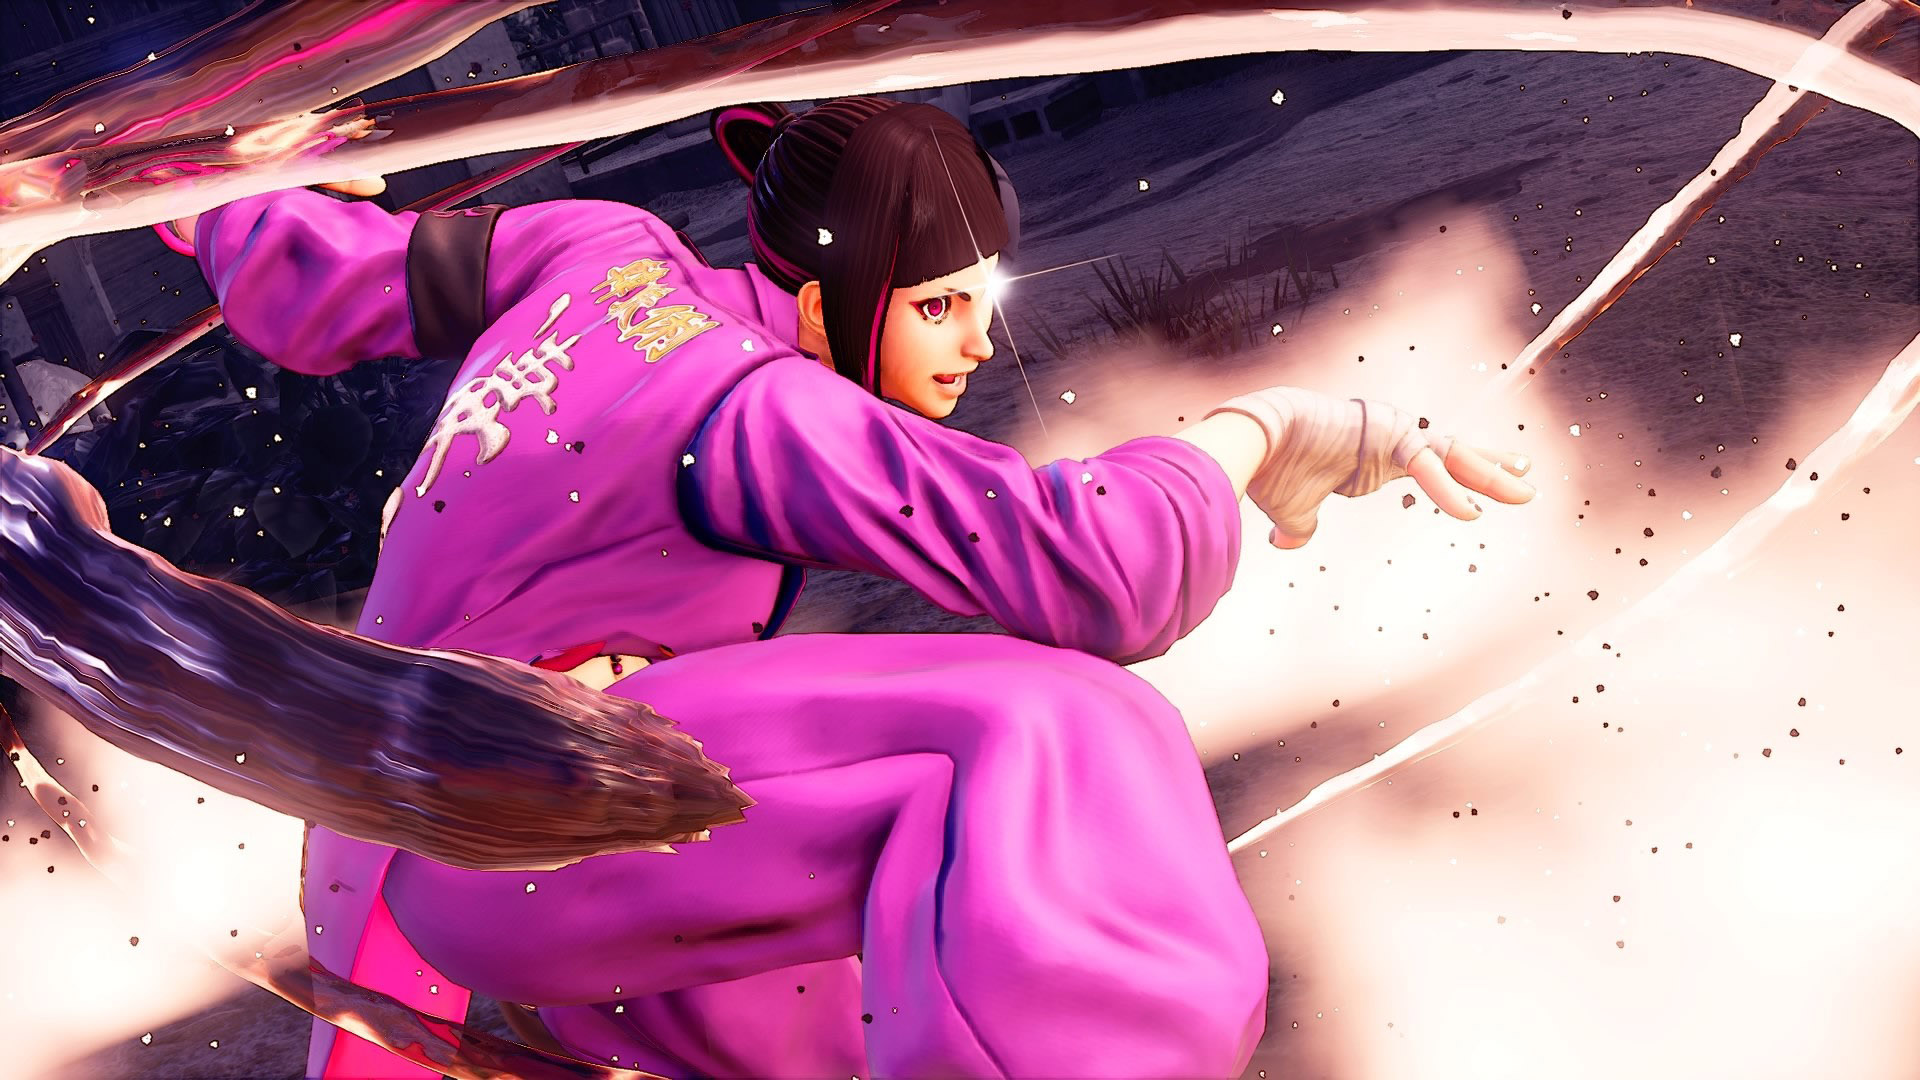 New Juri Costumes 5 out of 6 image gallery